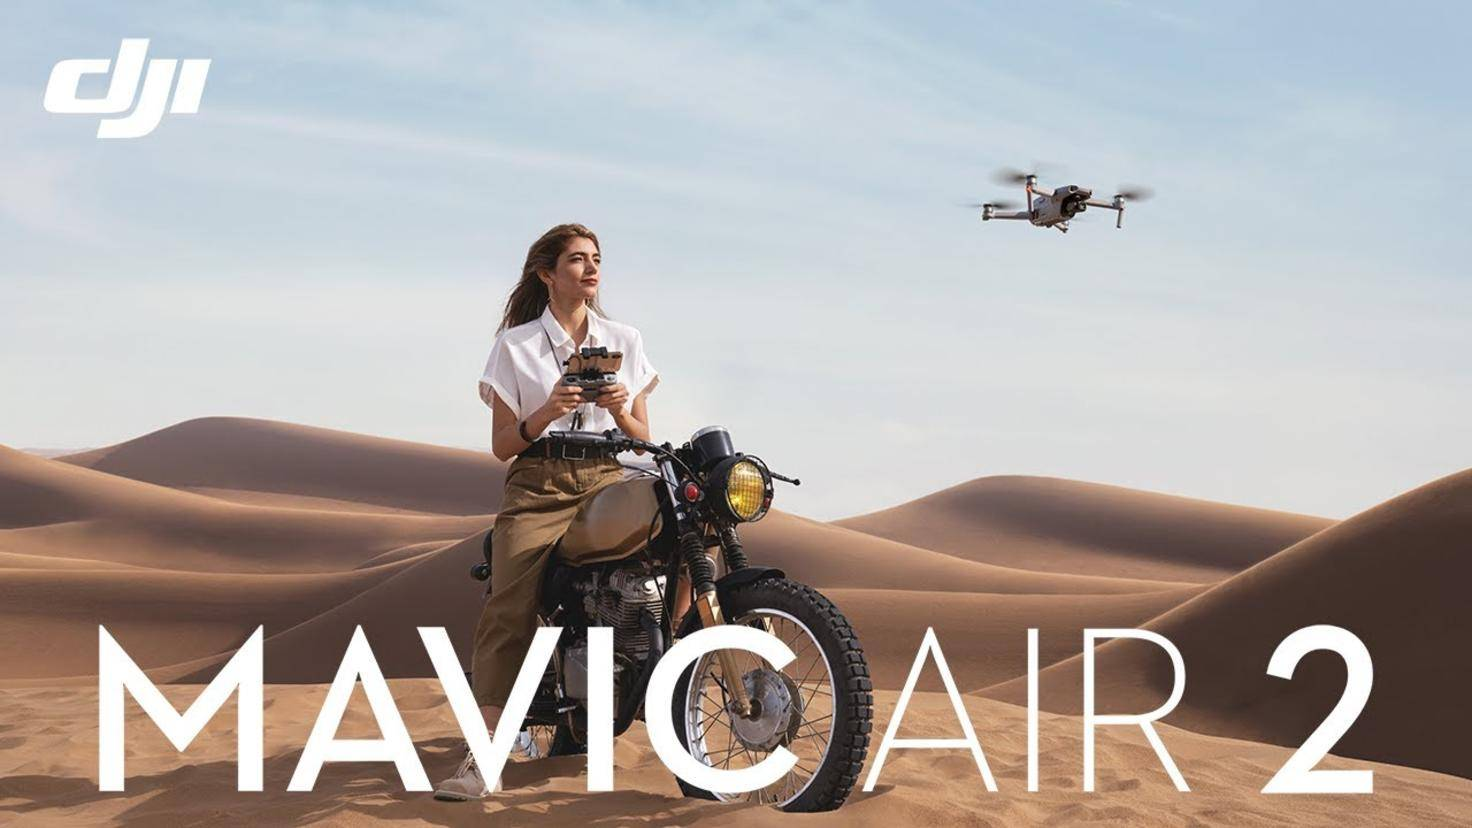 dji-mavic-air-2-produktfoto